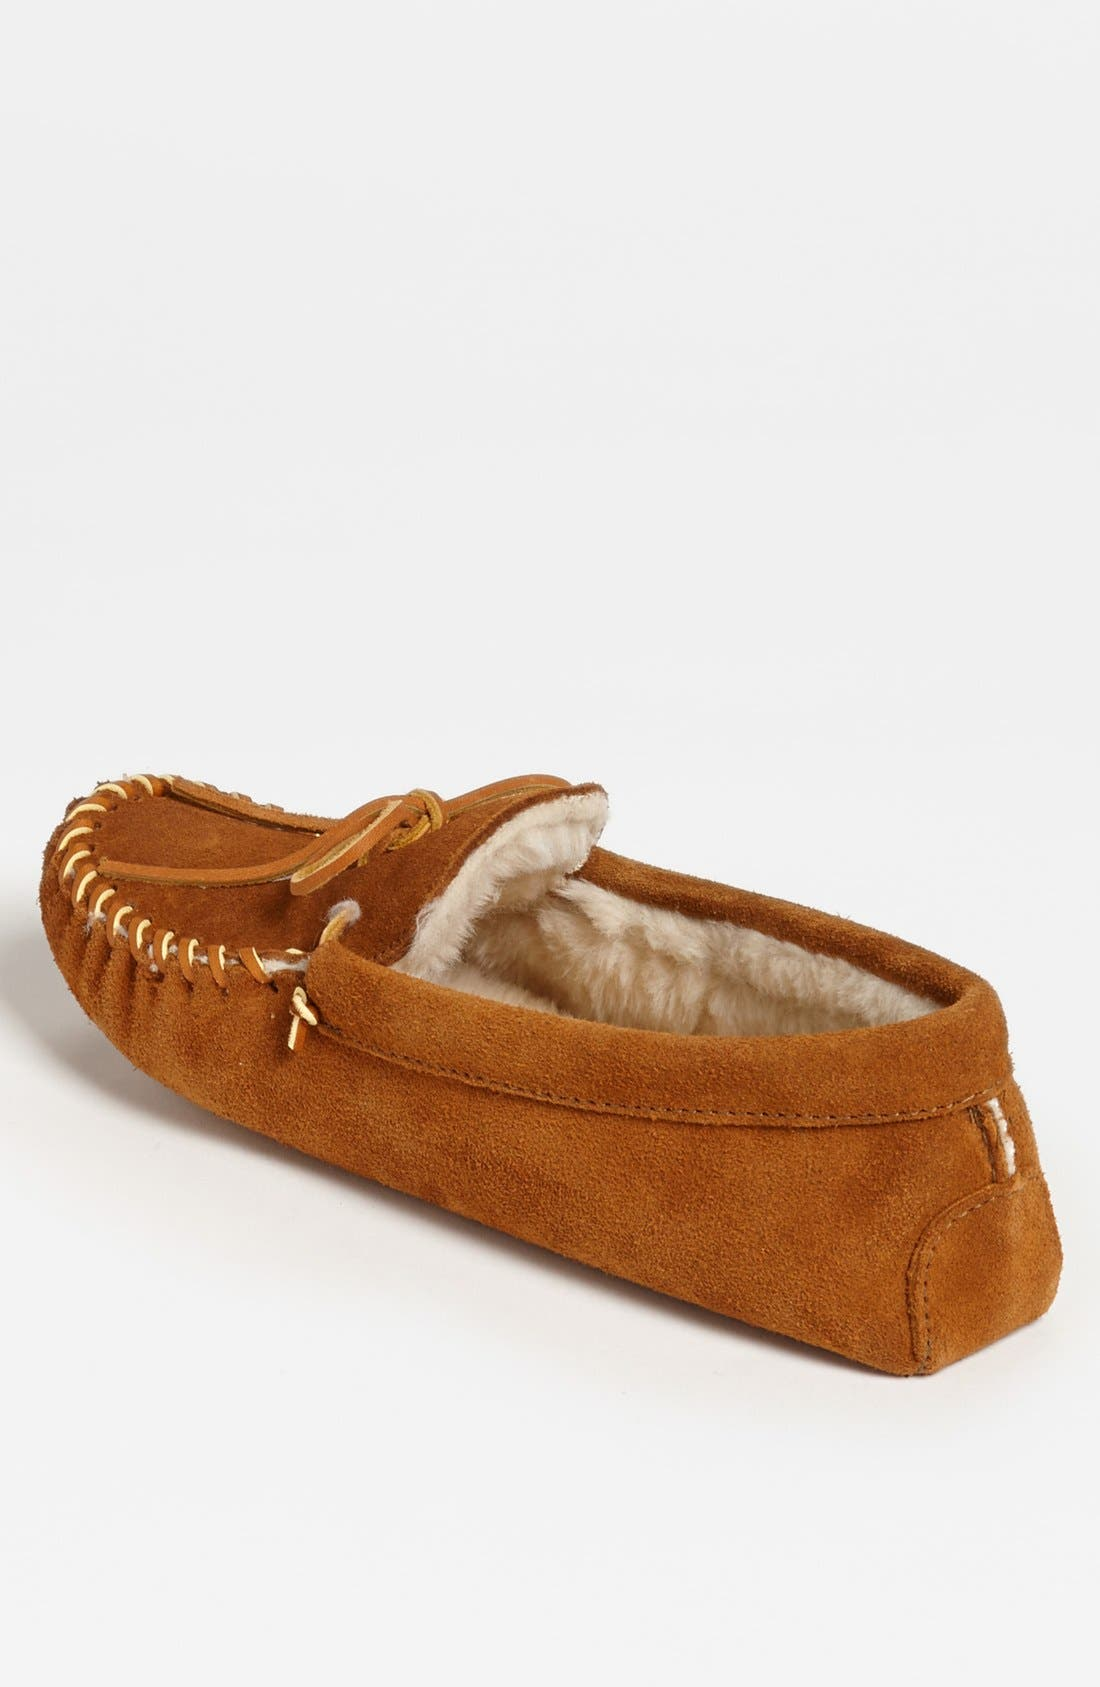 Suede Moccasin with Faux Fur Lining,                             Alternate thumbnail 2, color,                             BROWN SUEDE